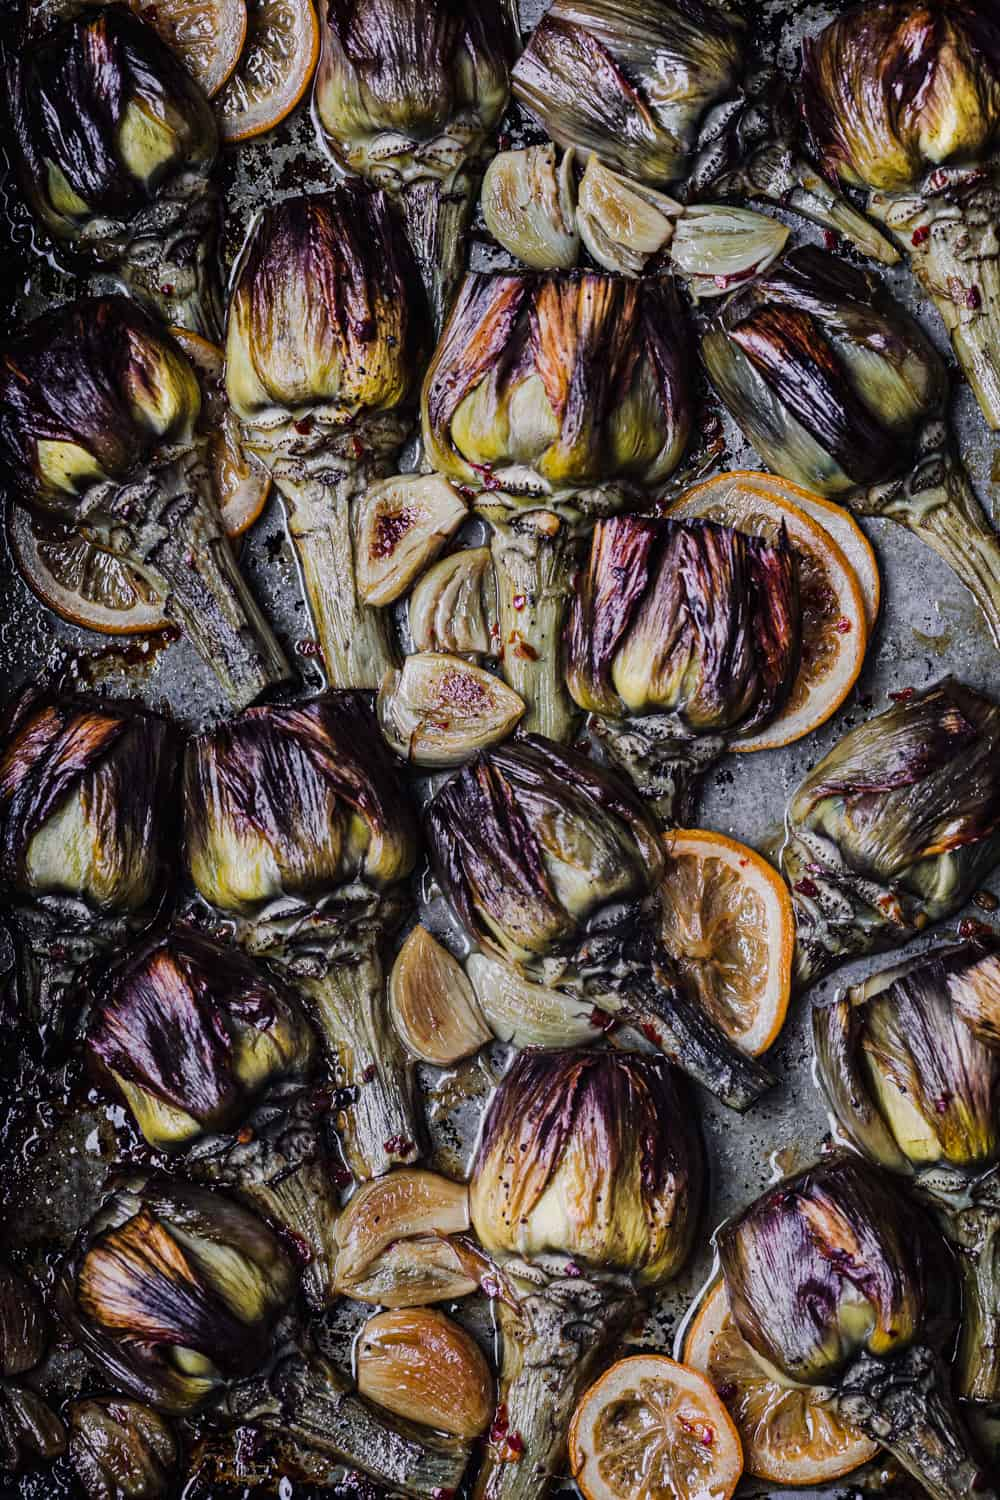 Post oven shot of the roasted artichokes with garlic and lemon slices